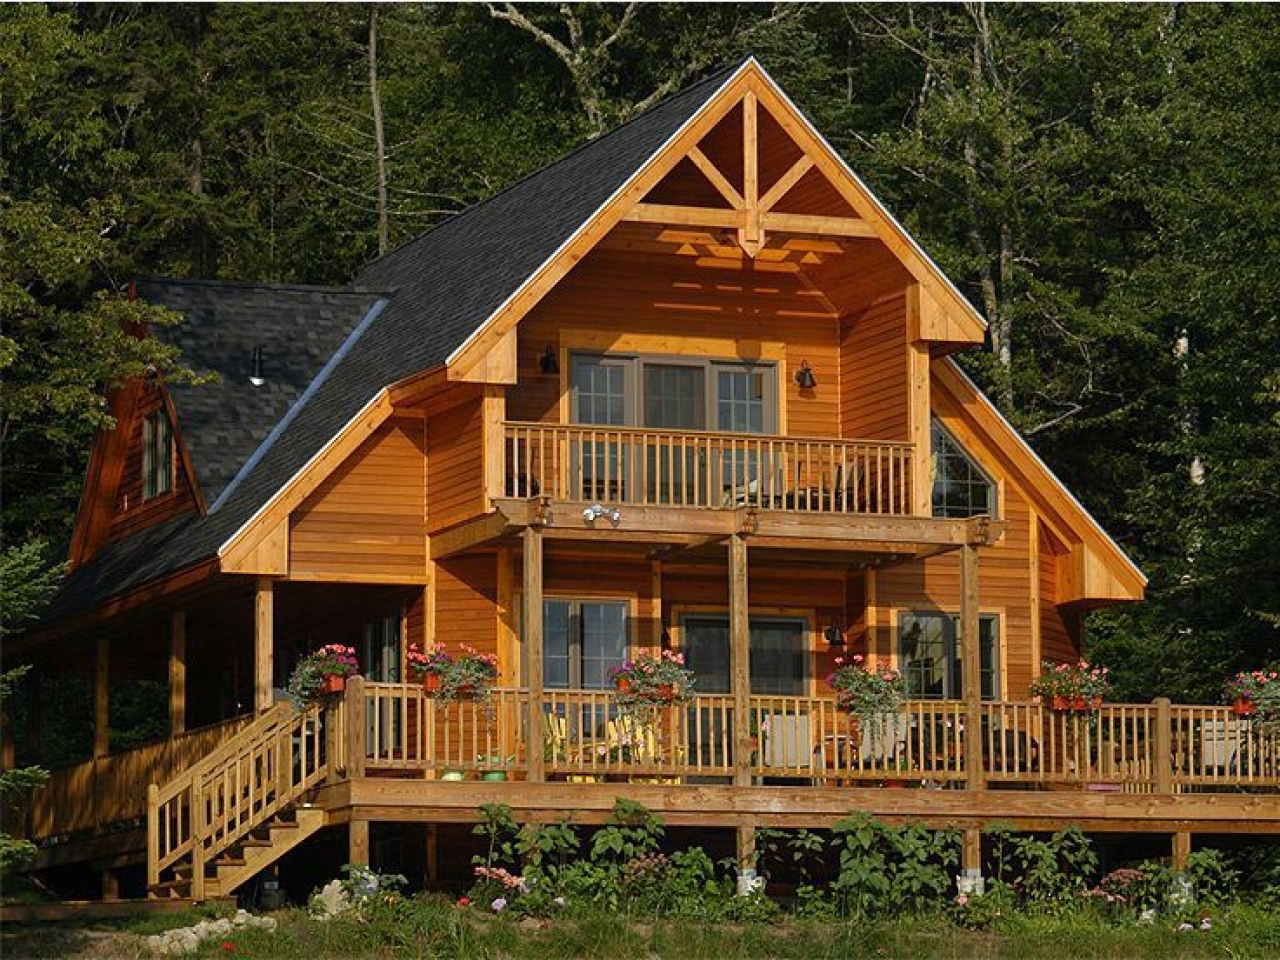 Beach House Vacation Home Floor Plans Vacation House Plans With Loft Lake Cabins Plans